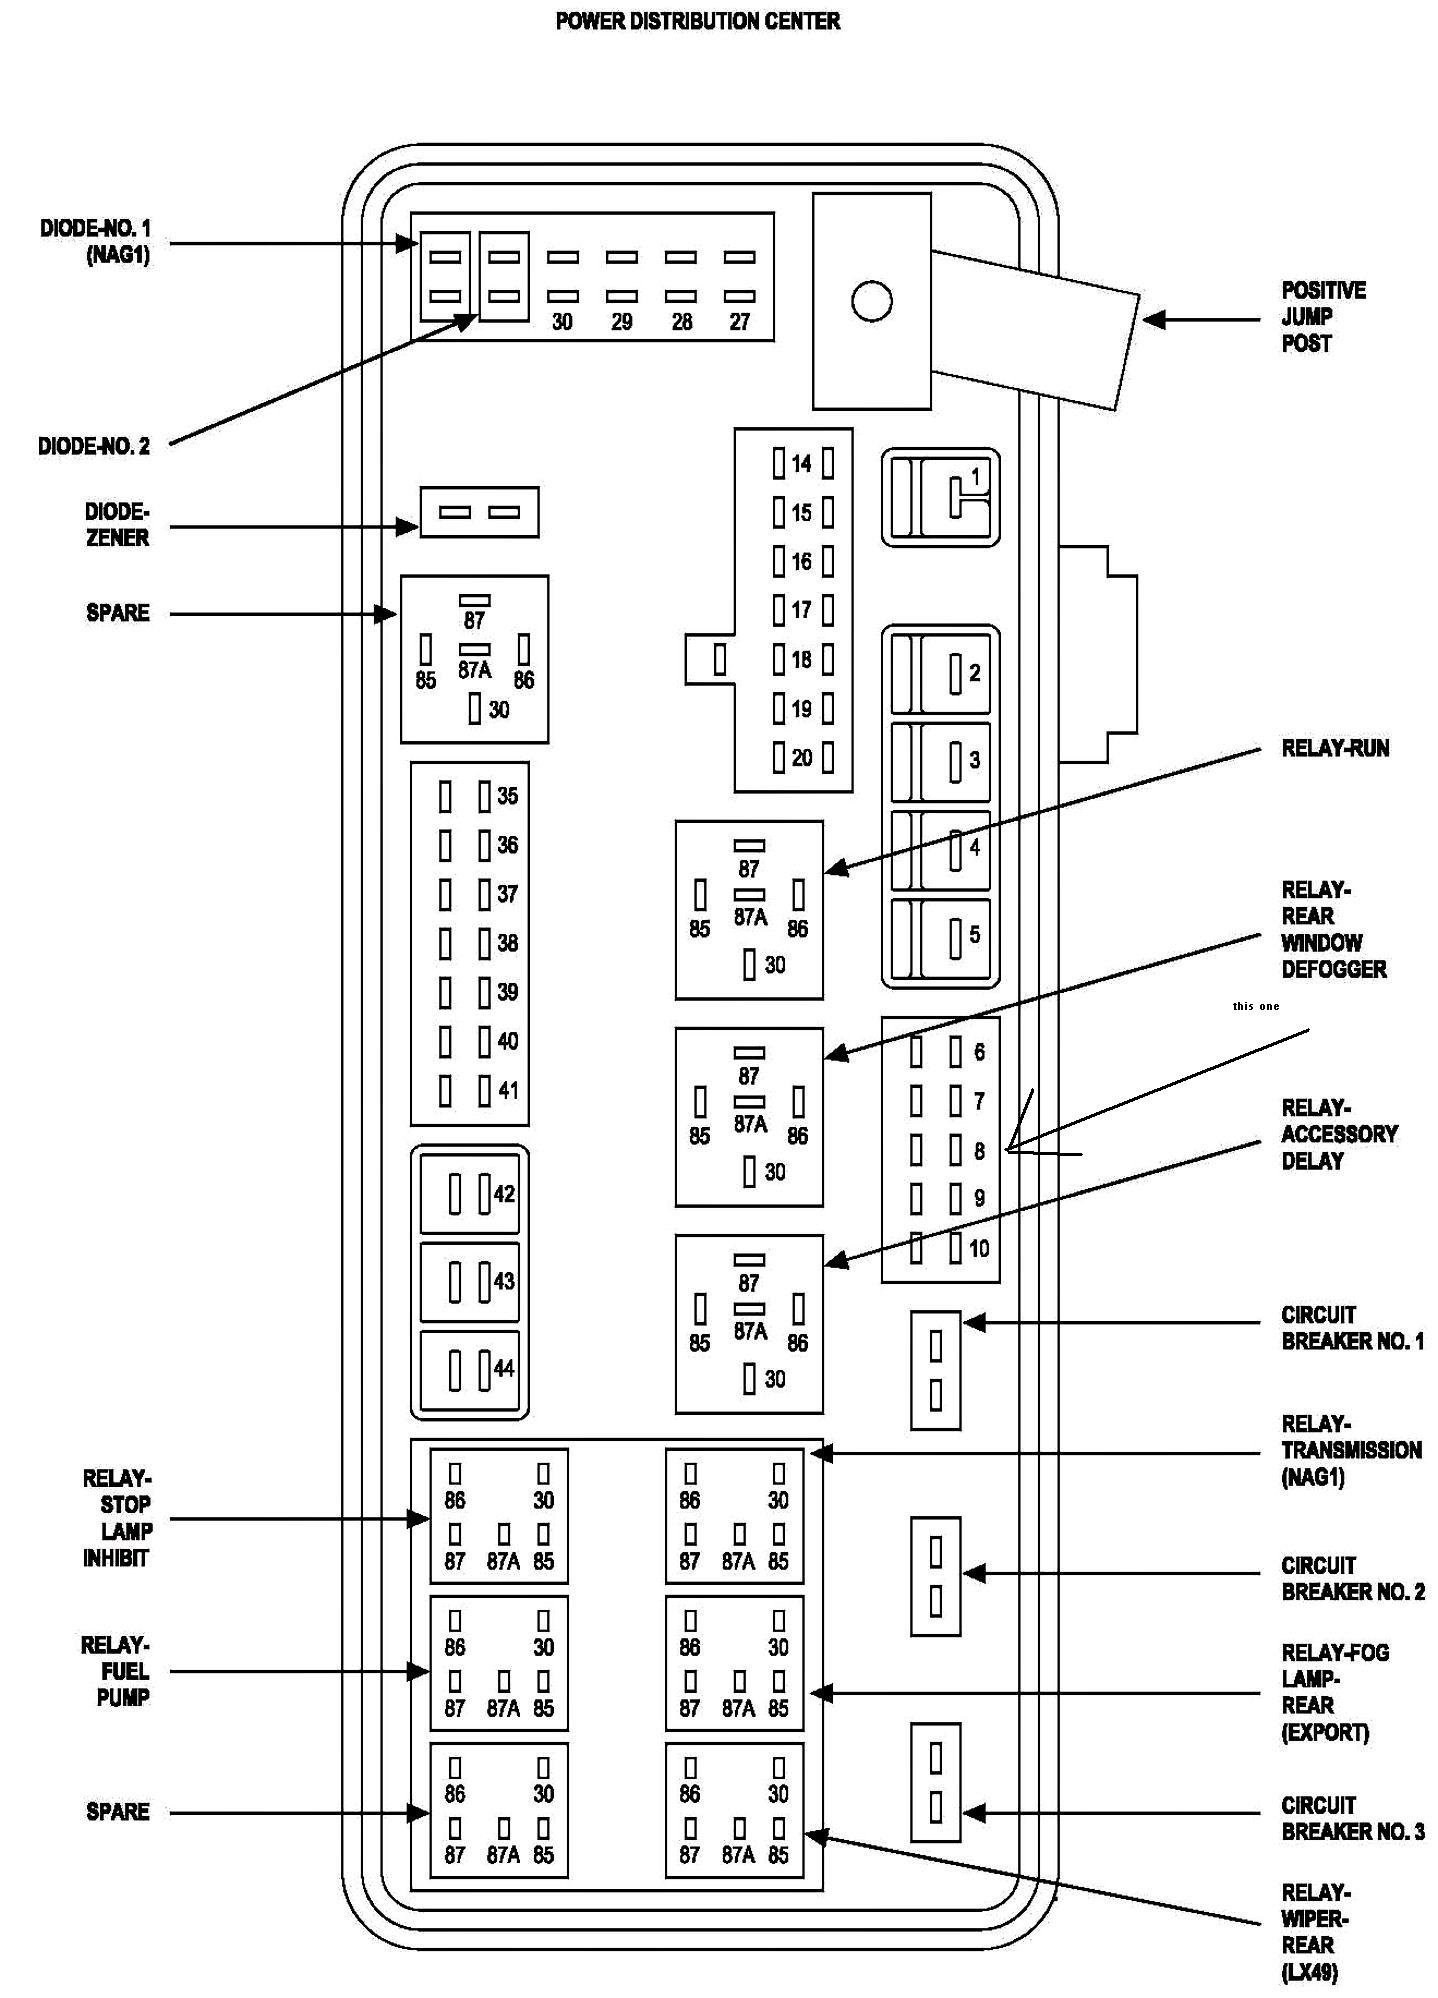 dodge ram 1500 parts diagram 2014 ram 1500 fuse box diagram wiring data of dodge ram 1500 parts diagram 2009 dodge ram fuse box diagram wiring diagram all data